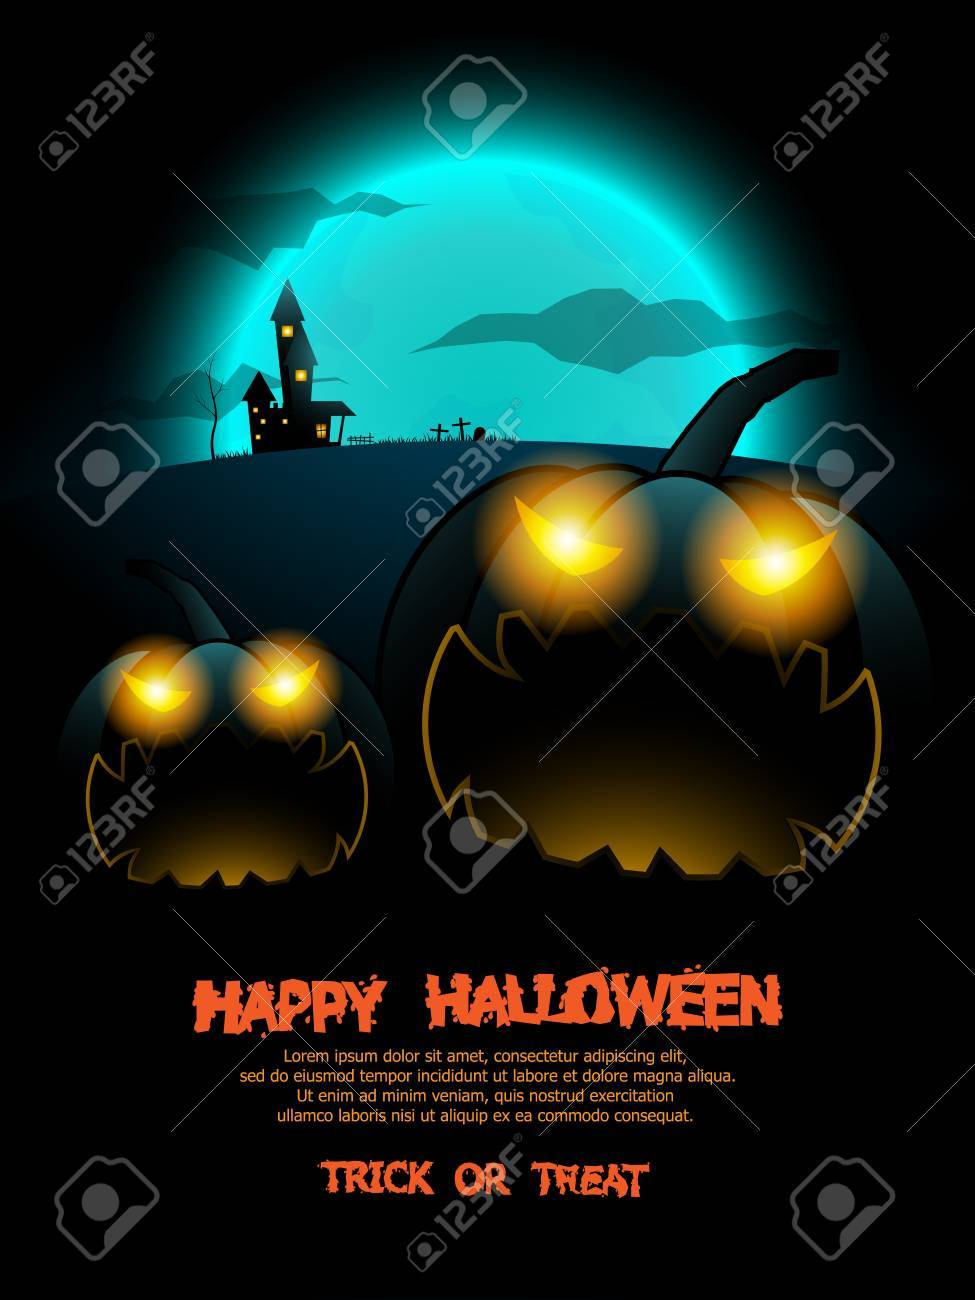 Halloween Poster Background Free.Abstract Happy Halloween Poster Background Vector Illustration